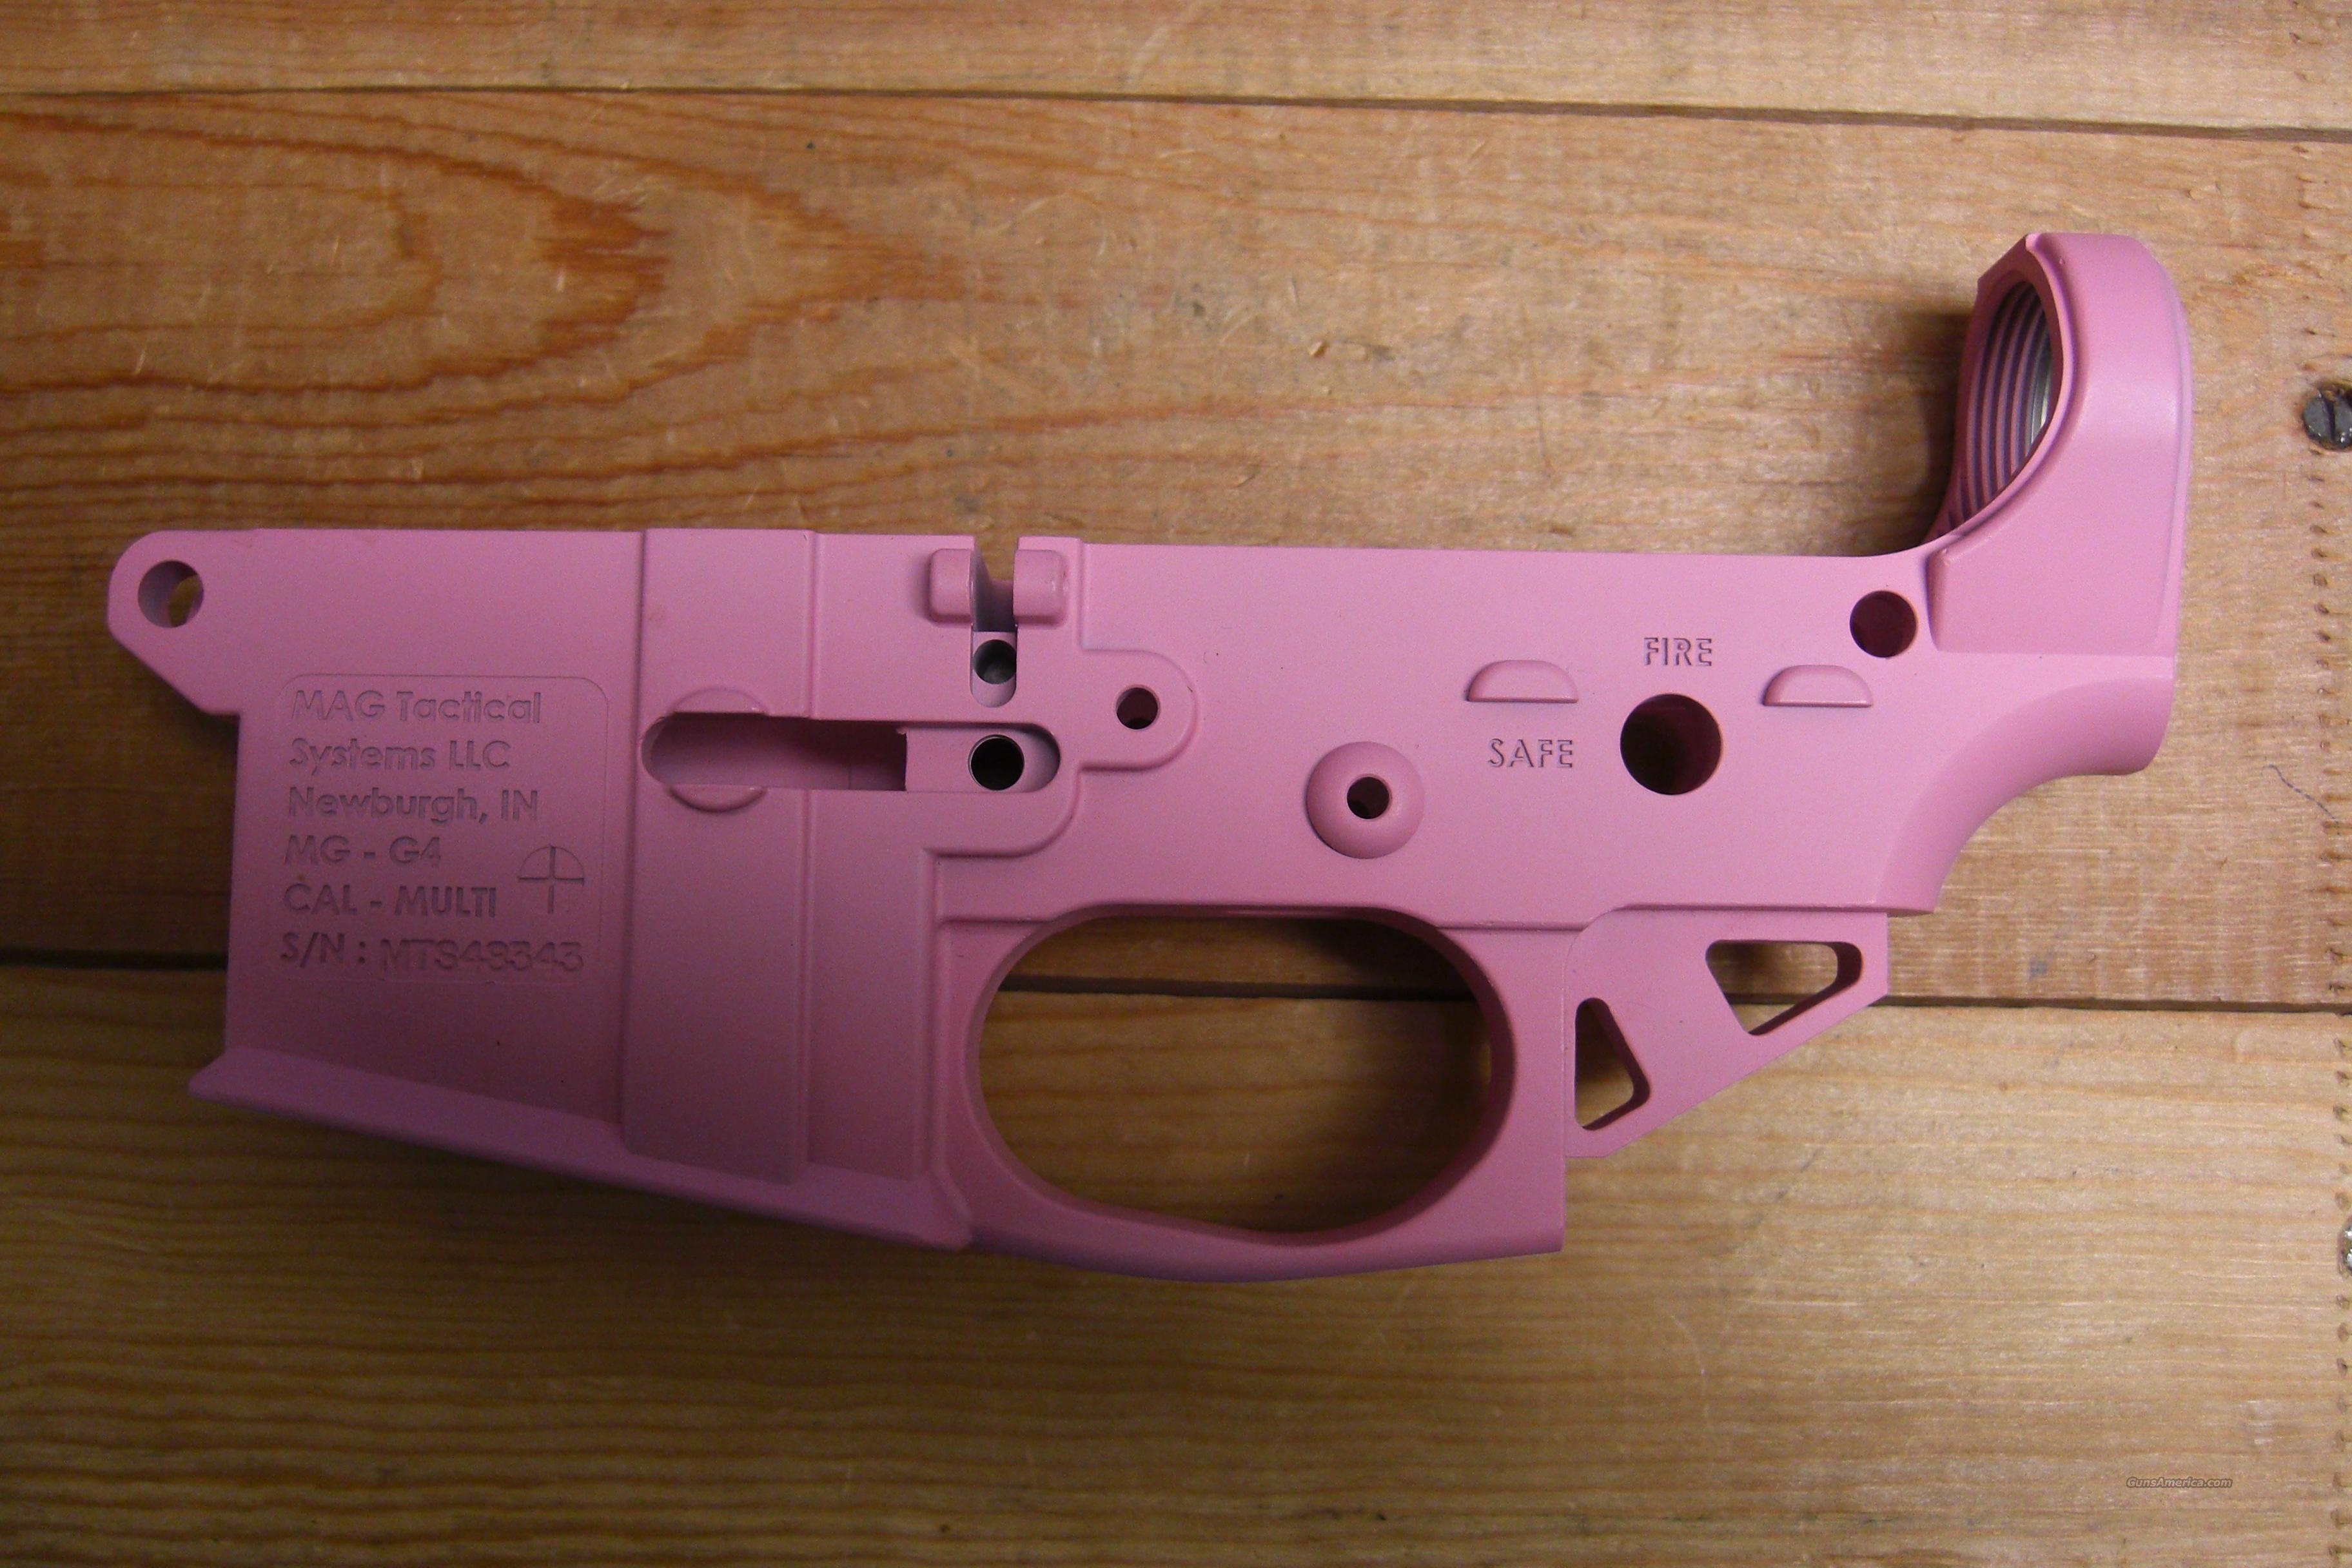 MAG Tactical  Pink receiver  Guns > Rifles > AR-15 Rifles - Small Manufacturers > Lower Only